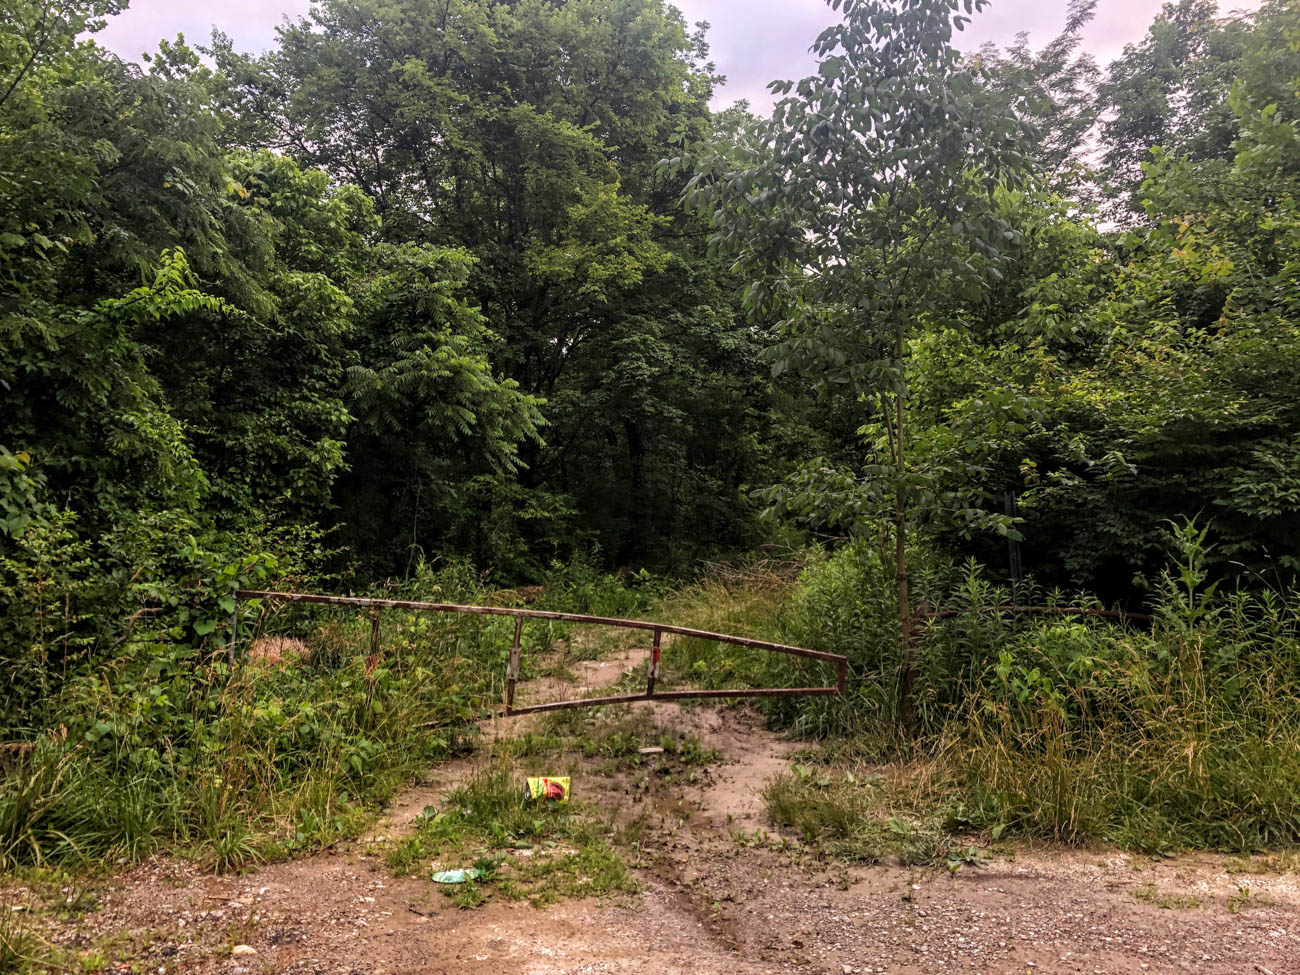 PLACE: Lick Road in Colerain Township / On the edge of the Richardson Forest Preserve off of W Kemper Road is where Lick Road resides. Its dead end is where people go to spot the ghost of Amy. The details are fuzzy, but as the legend goes, she was allegedly murdered by her boyfriend/killed by her stepfather/found dead there. If you park your car and flash your lights, honk your horn, and wait in the dark, you'll supposedly spot her ghost and hear her scream. You may even see the words 'help me' written in condensation on your windows. The legend isn't exactly straightforward, but the spot receives a 5/10 on the Spookiness Scale because the vibe is overall uneasy and distressing, especially when you see a black cat run across the road during your trip like we did. / Image: Di Minardi // Published: 7.23.19